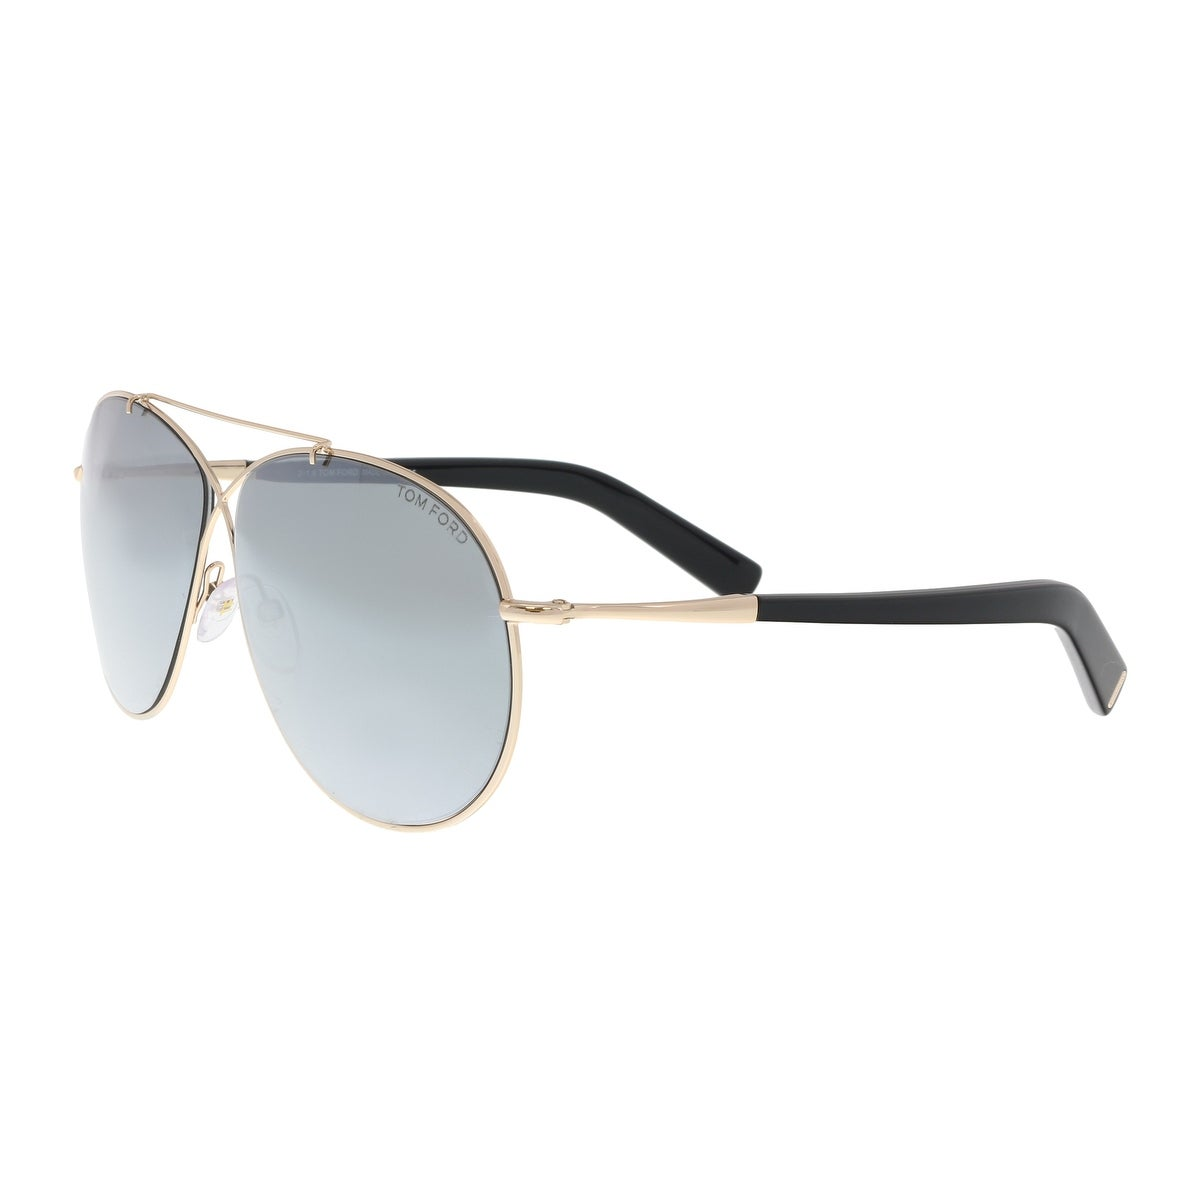 f774bd98a40 Women s Sunglasses